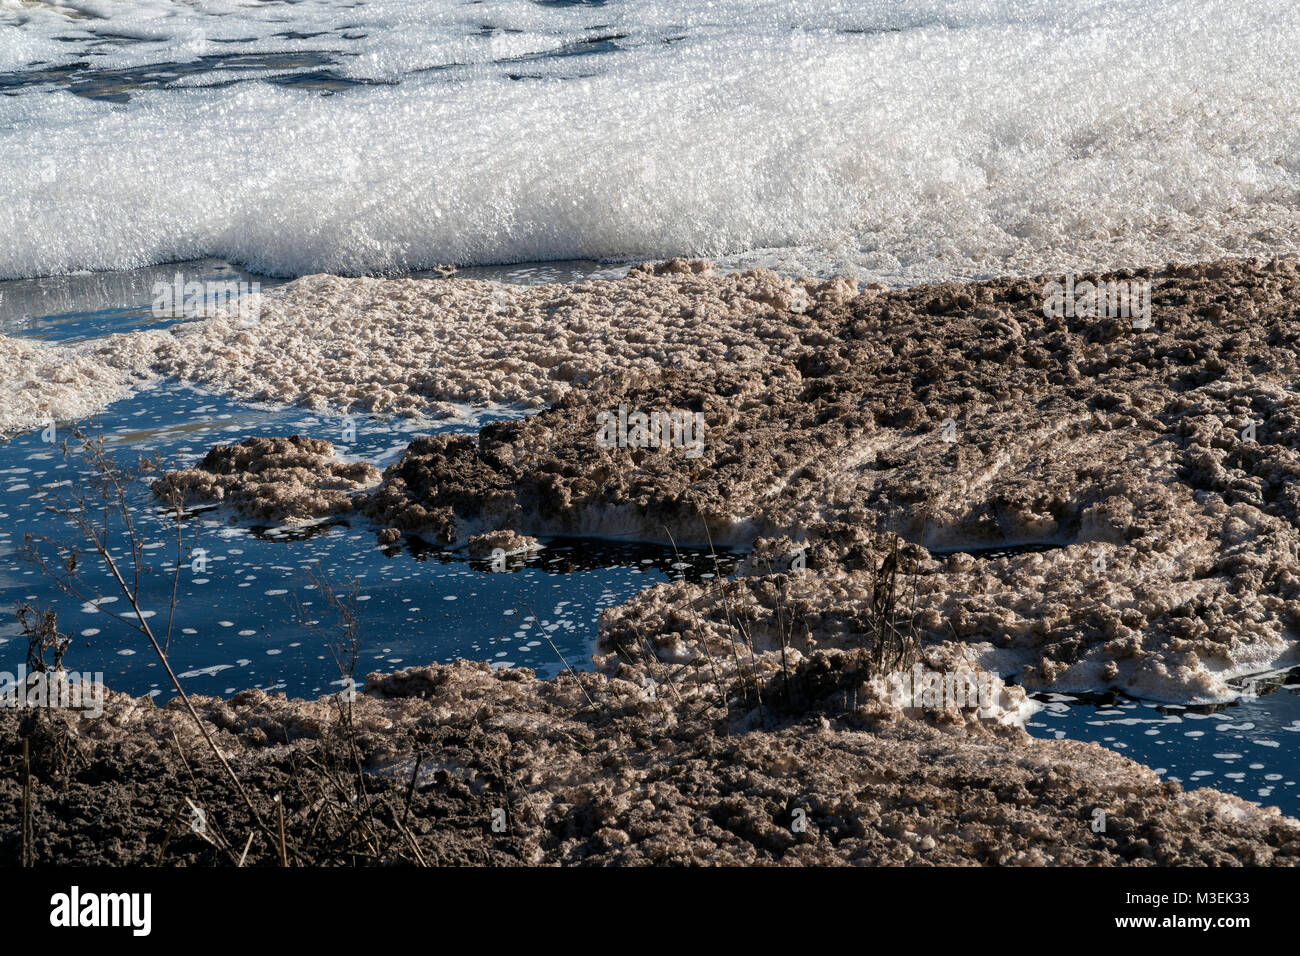 River pollution. Foam in Tejo (Tagus) River from high organic matter content on the water and toxic chemical pollution. - Stock Image